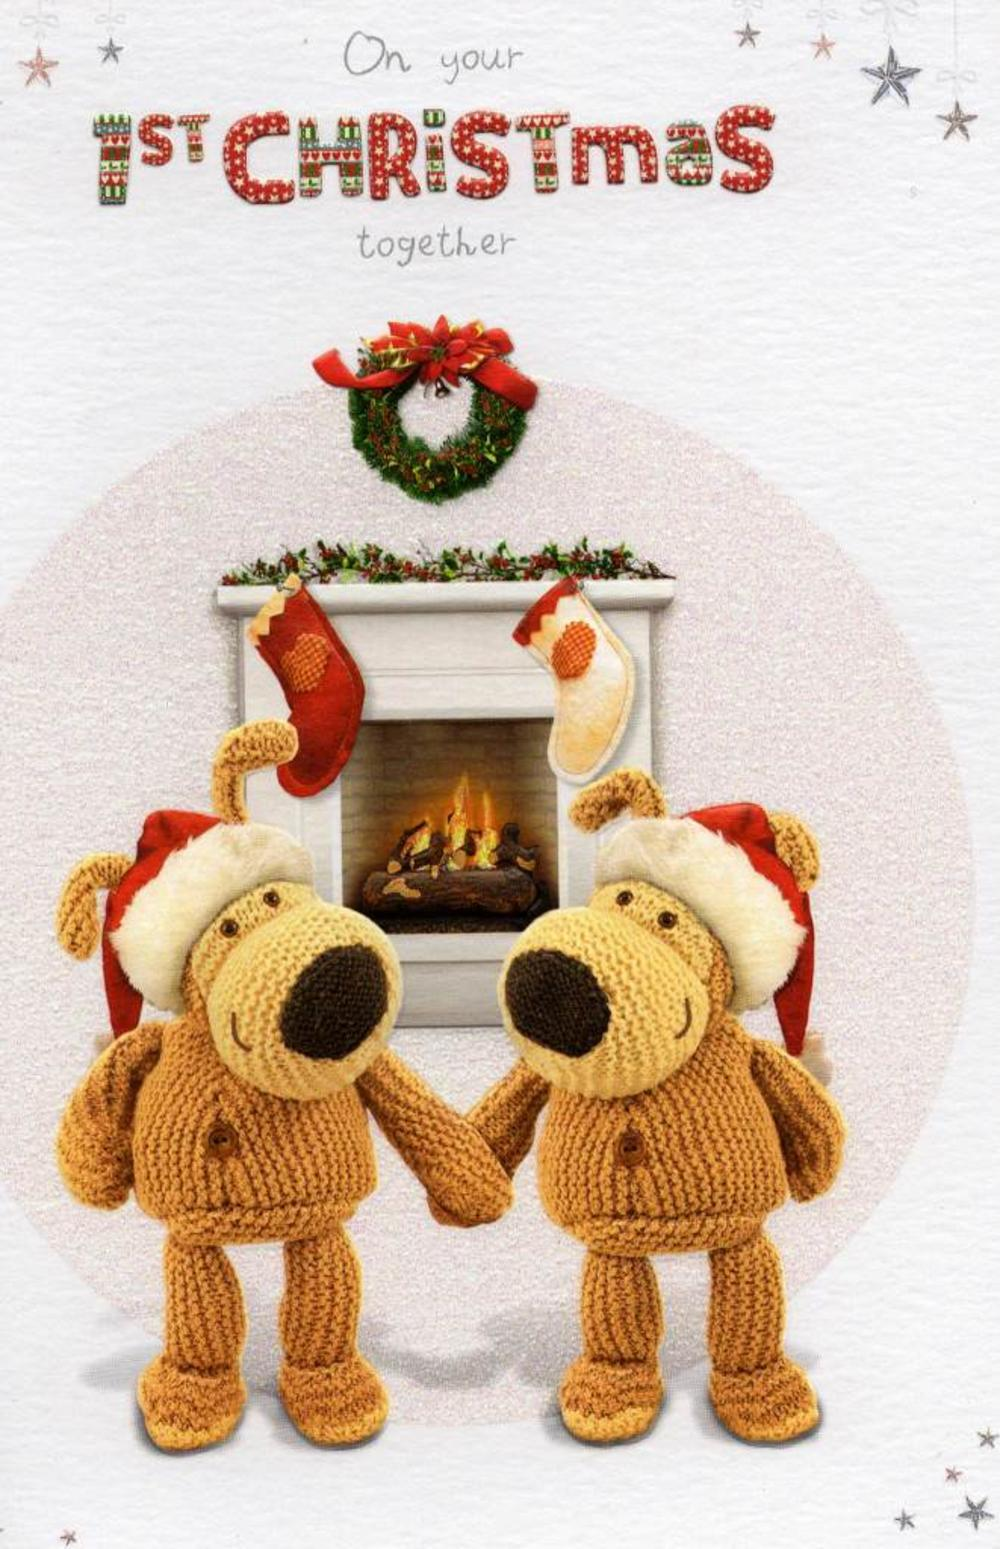 Boofle On Your 1st Christmas Together Card